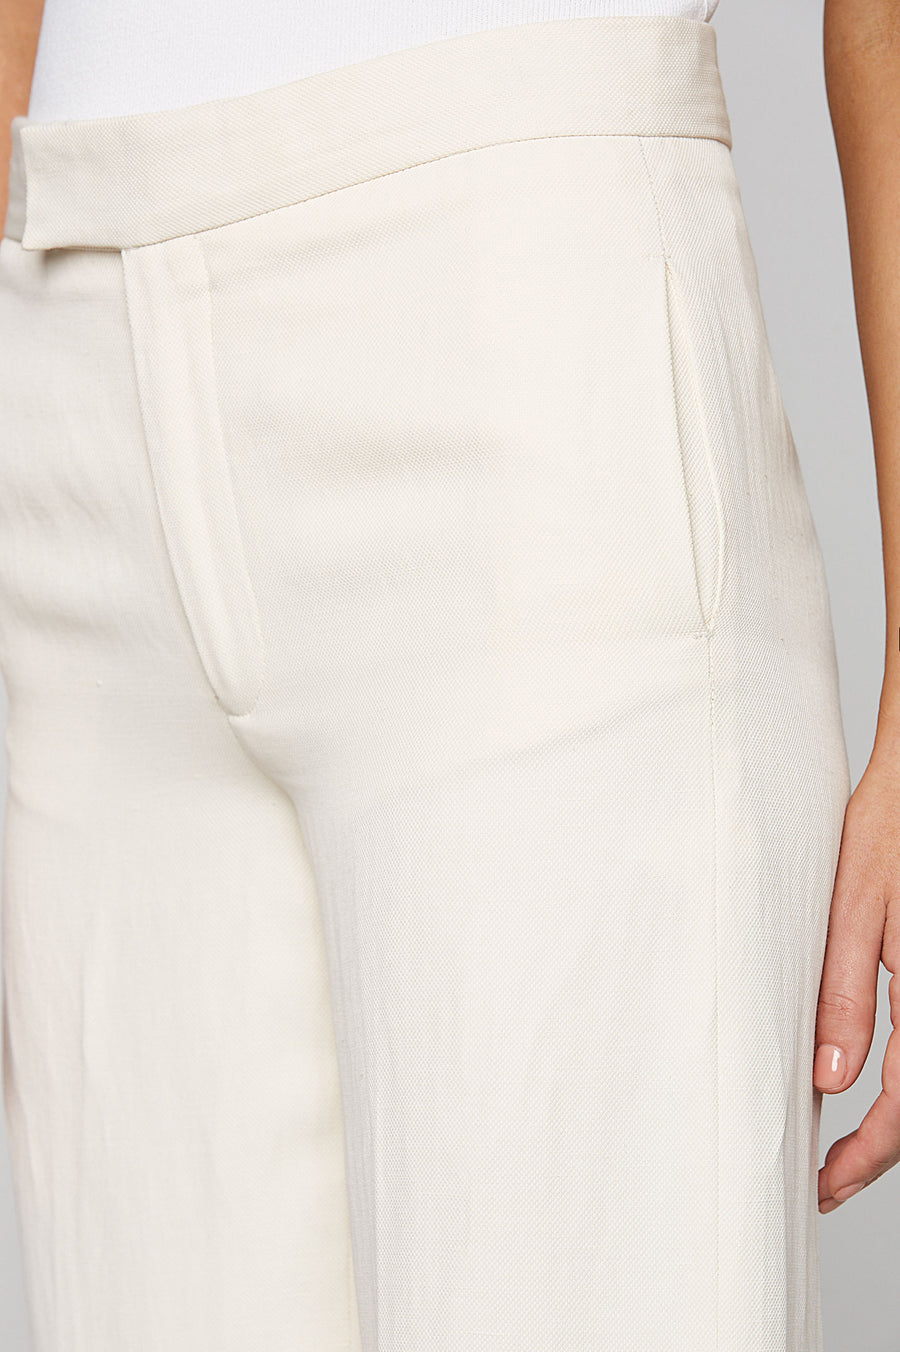 WIDE LEG TROUSER, NATURAL color